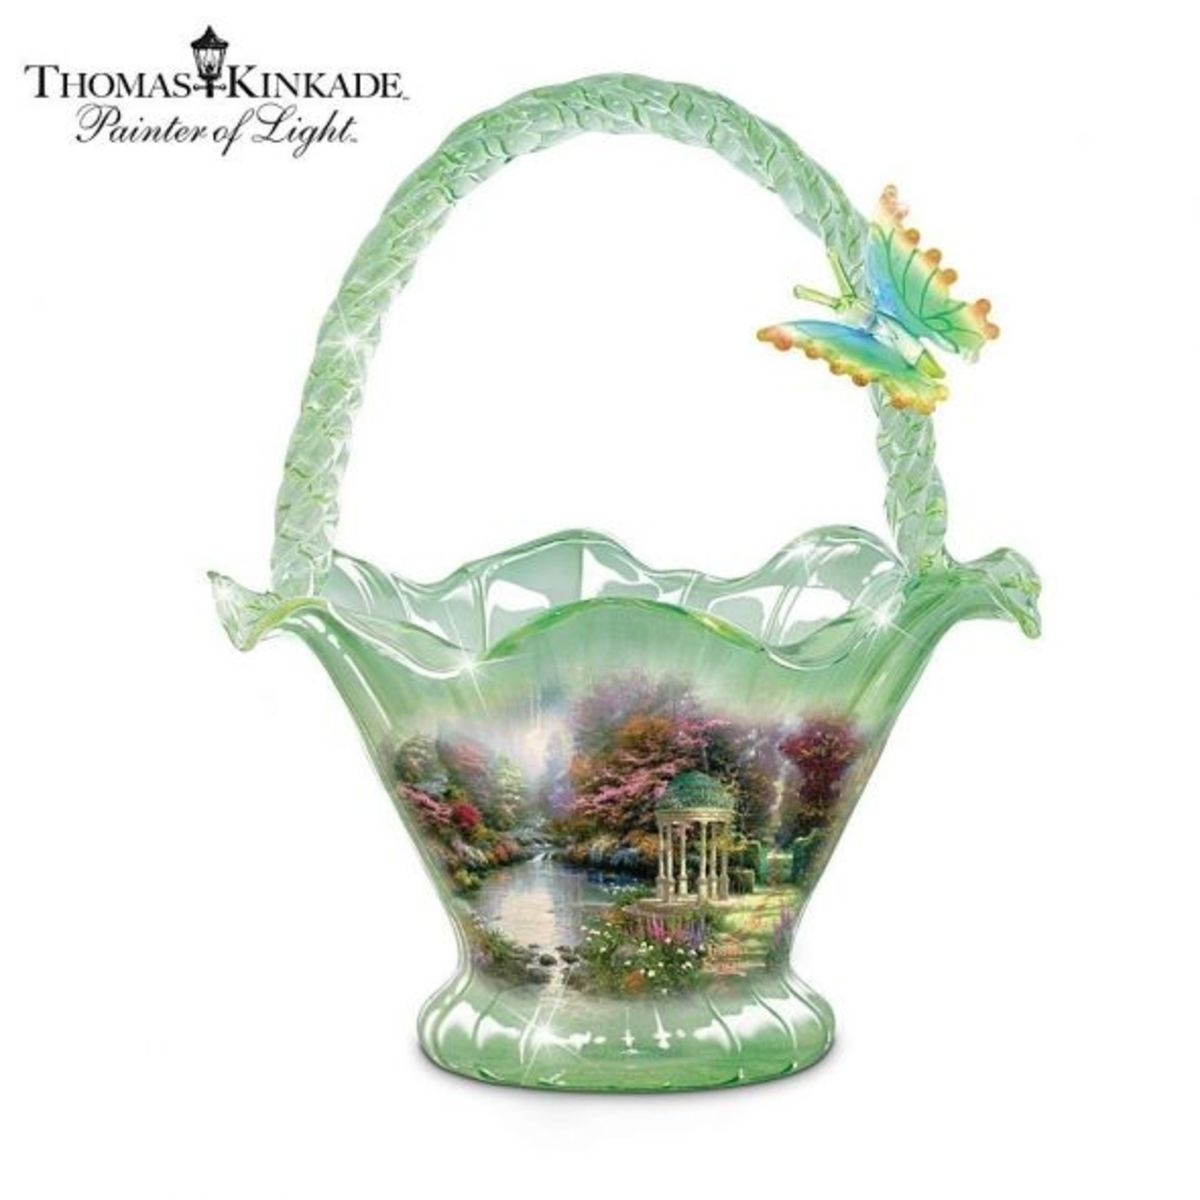 The Kinkade Garden designs are on decorative items such as this hand-blown basket.